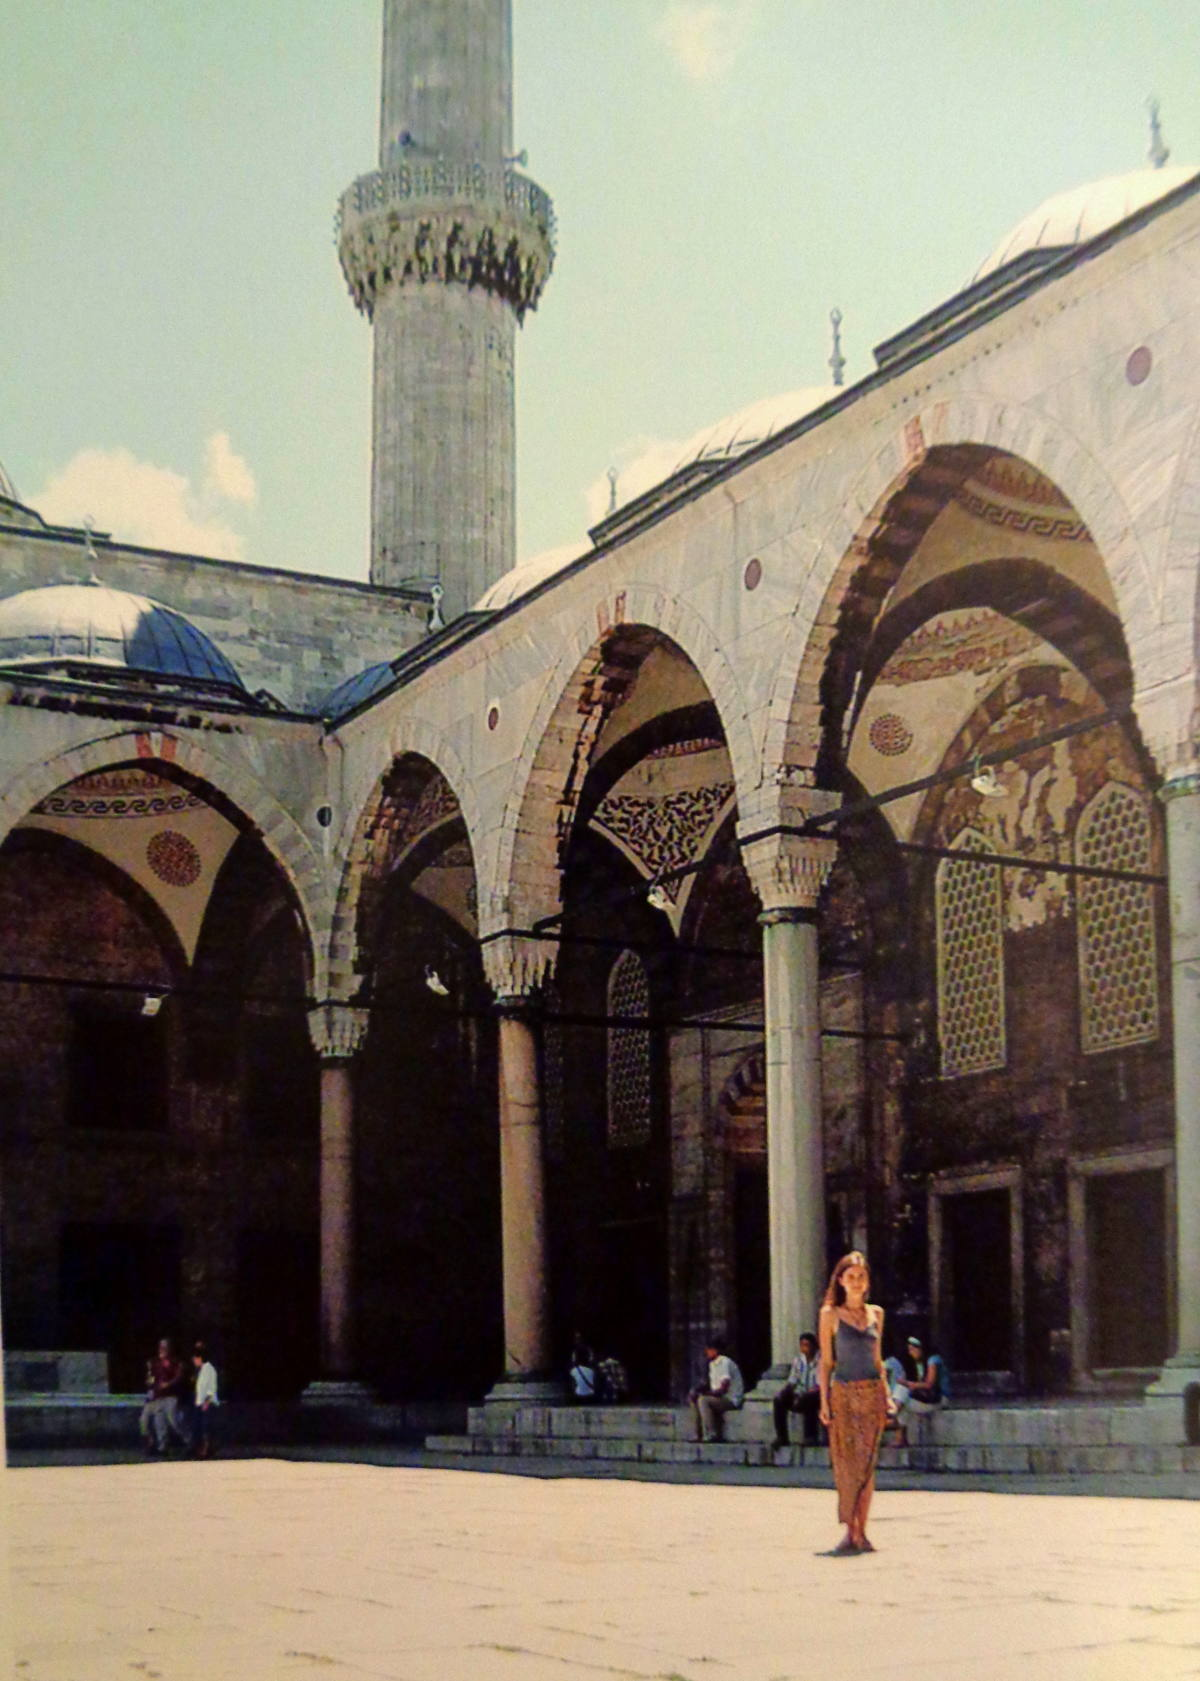 My last visit to Istambul - 2006